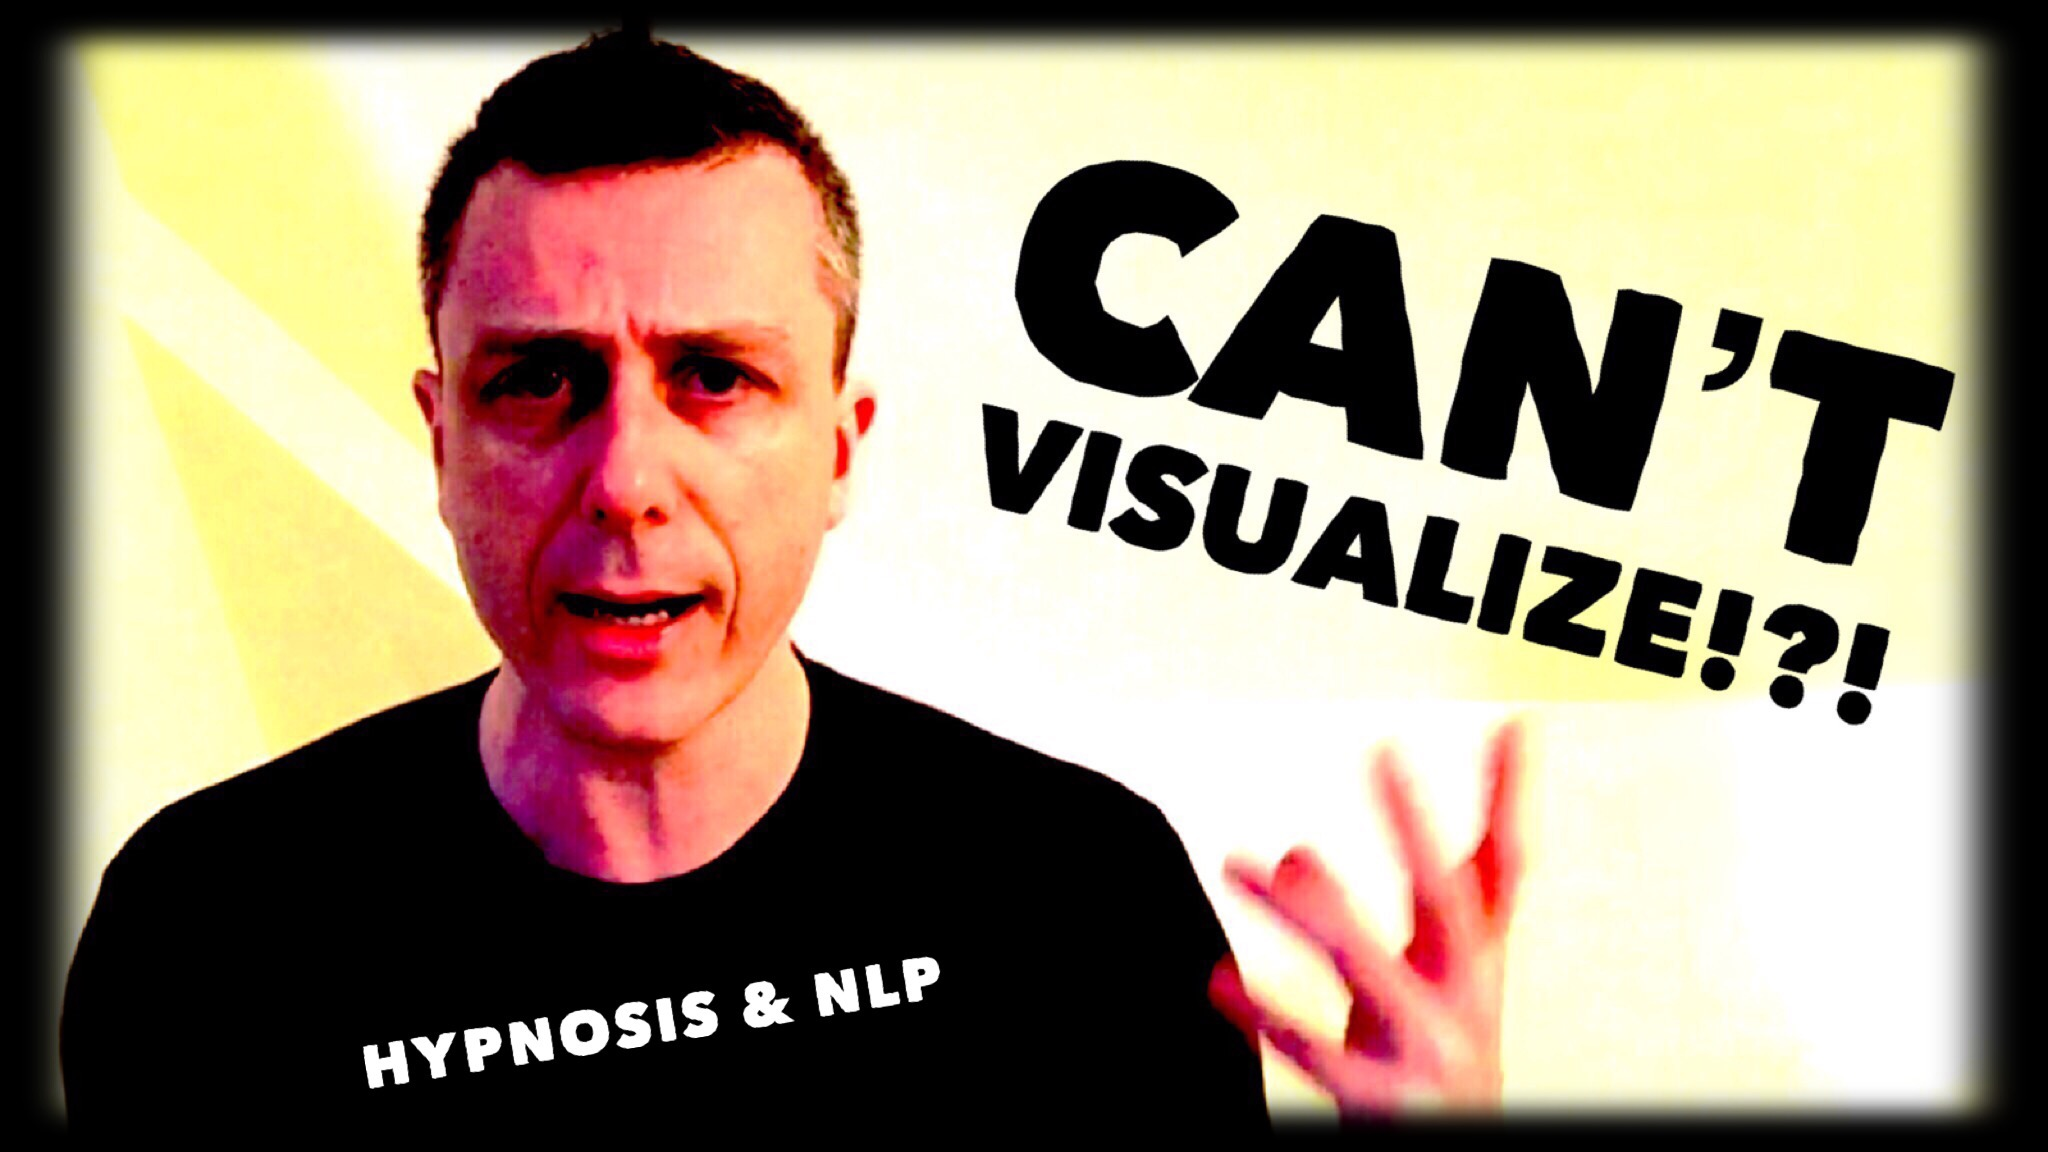 Hypnosis & NLP… Can't Visualize?!? — Hypnosis Without Trance